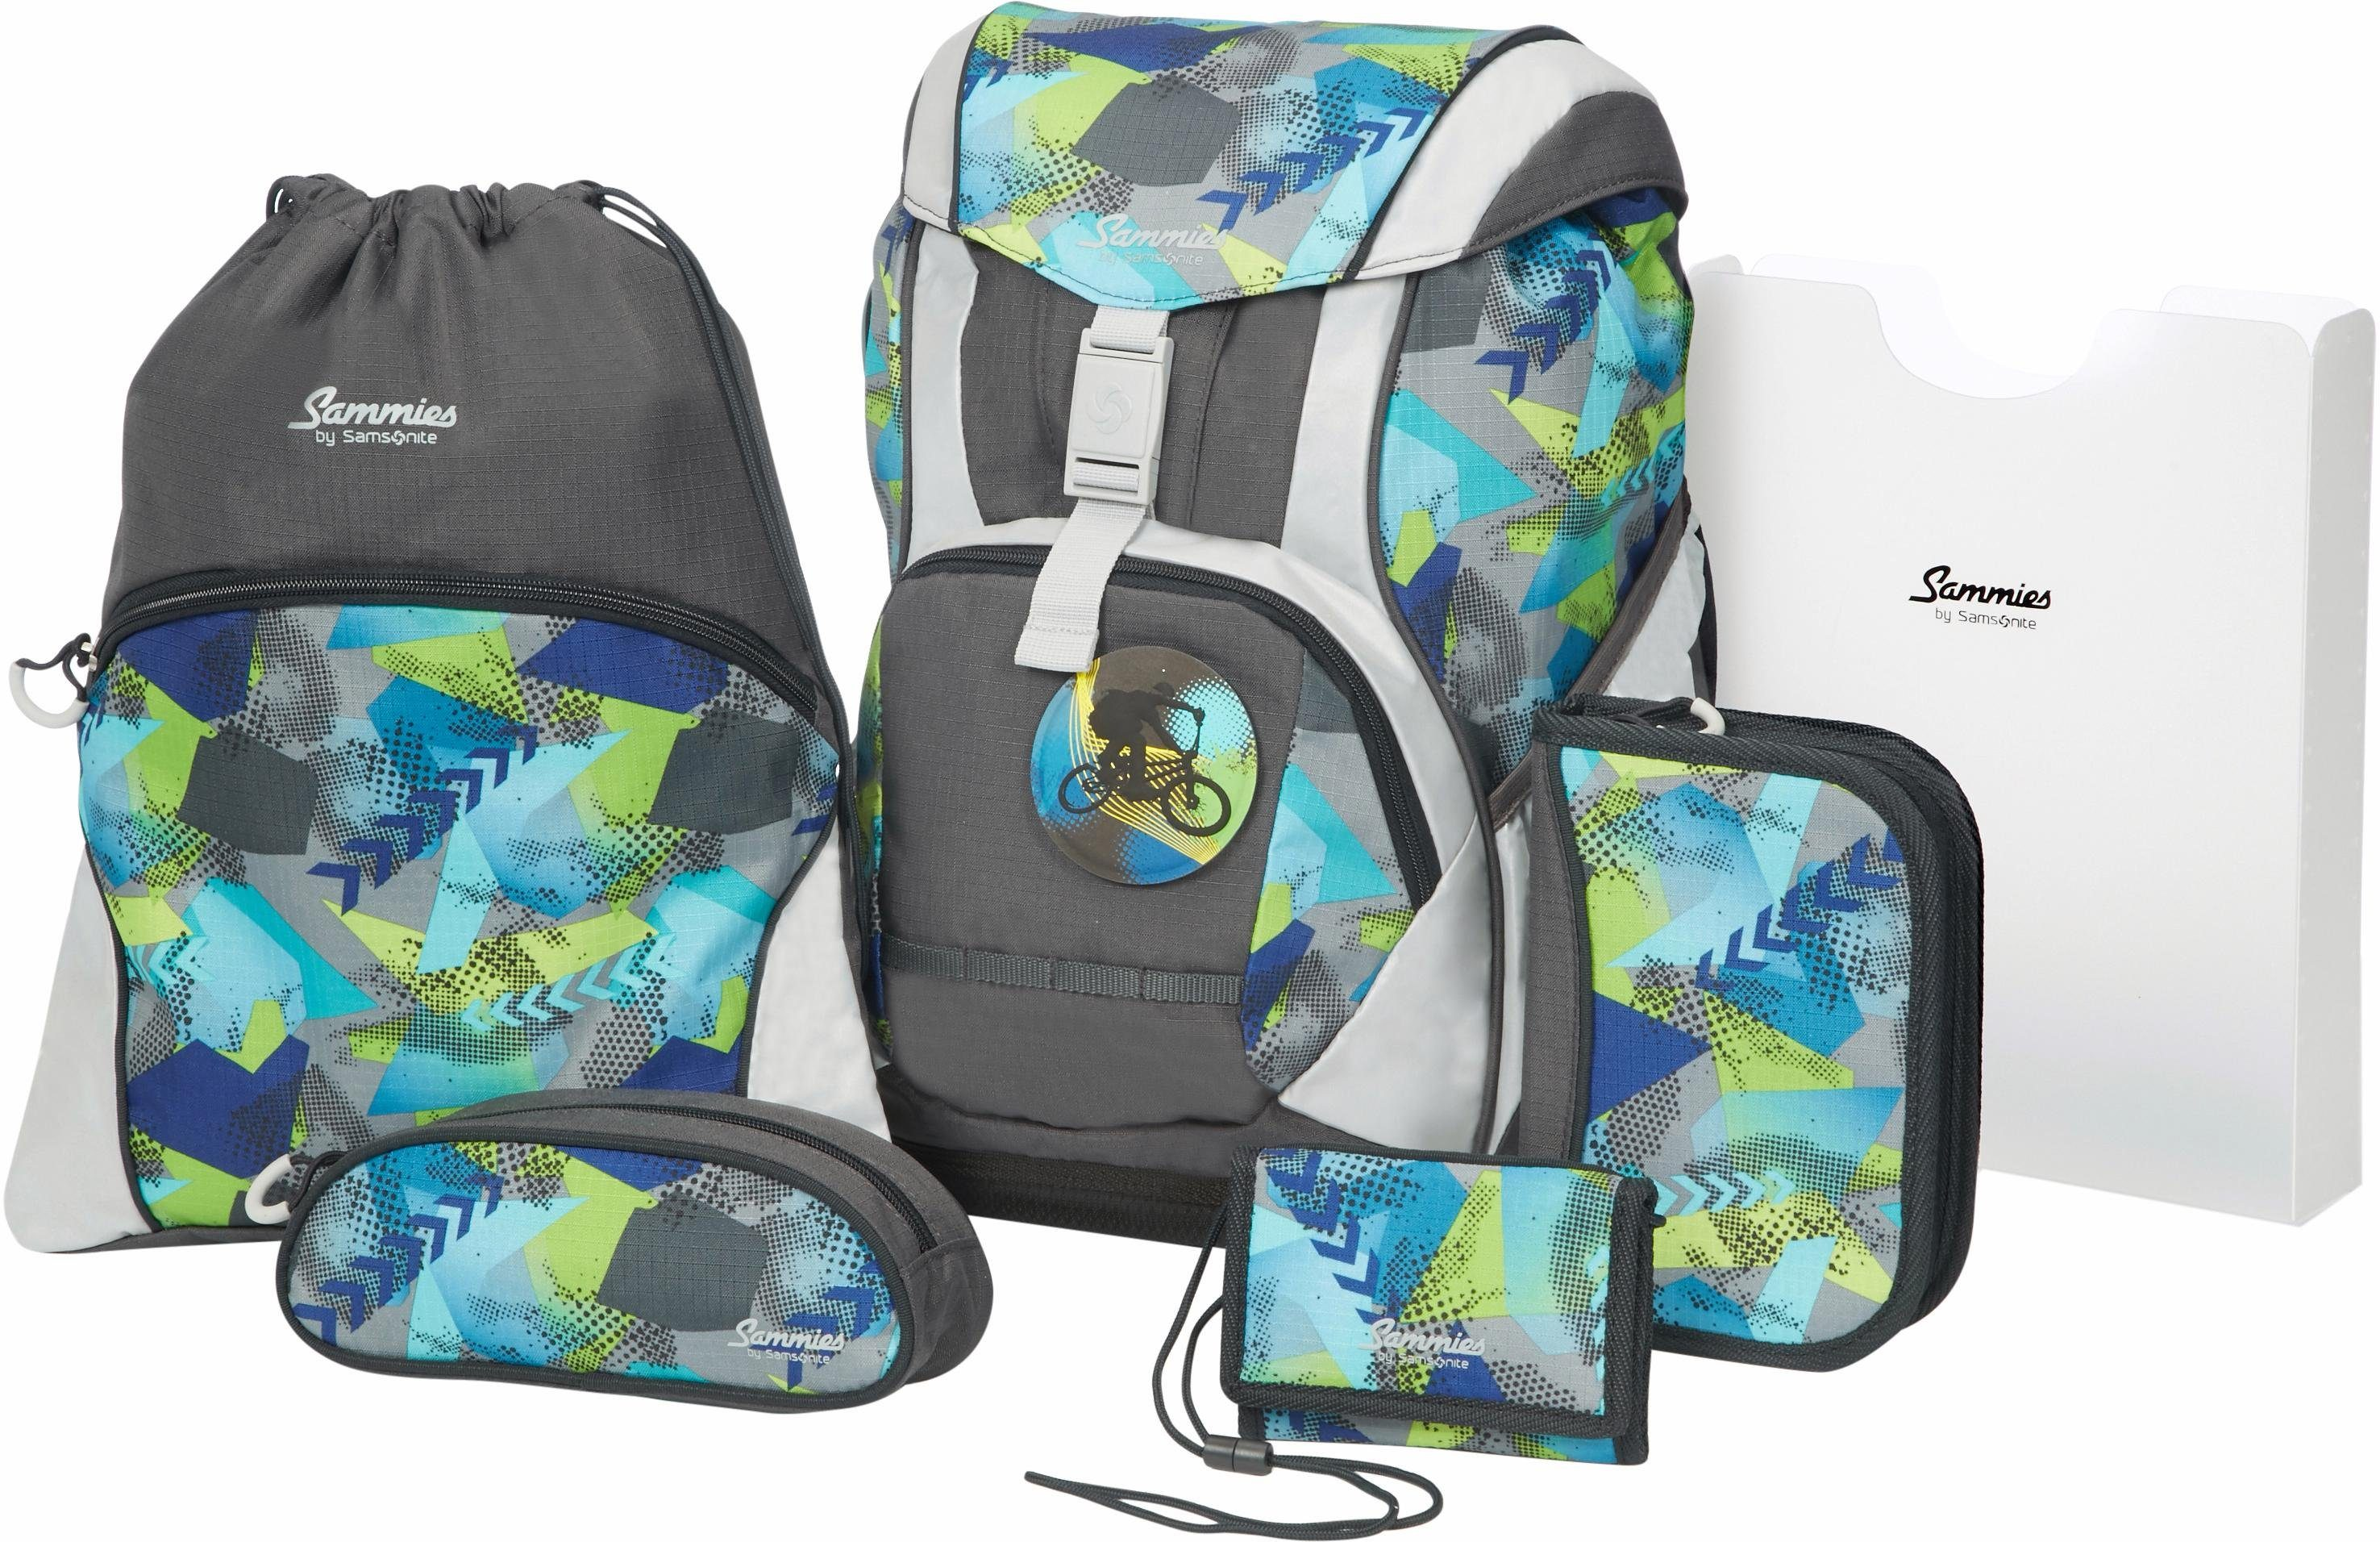 Sammies by Samsonite Schulranzen Set, 6-tlg., »ERGOFIT street sports«